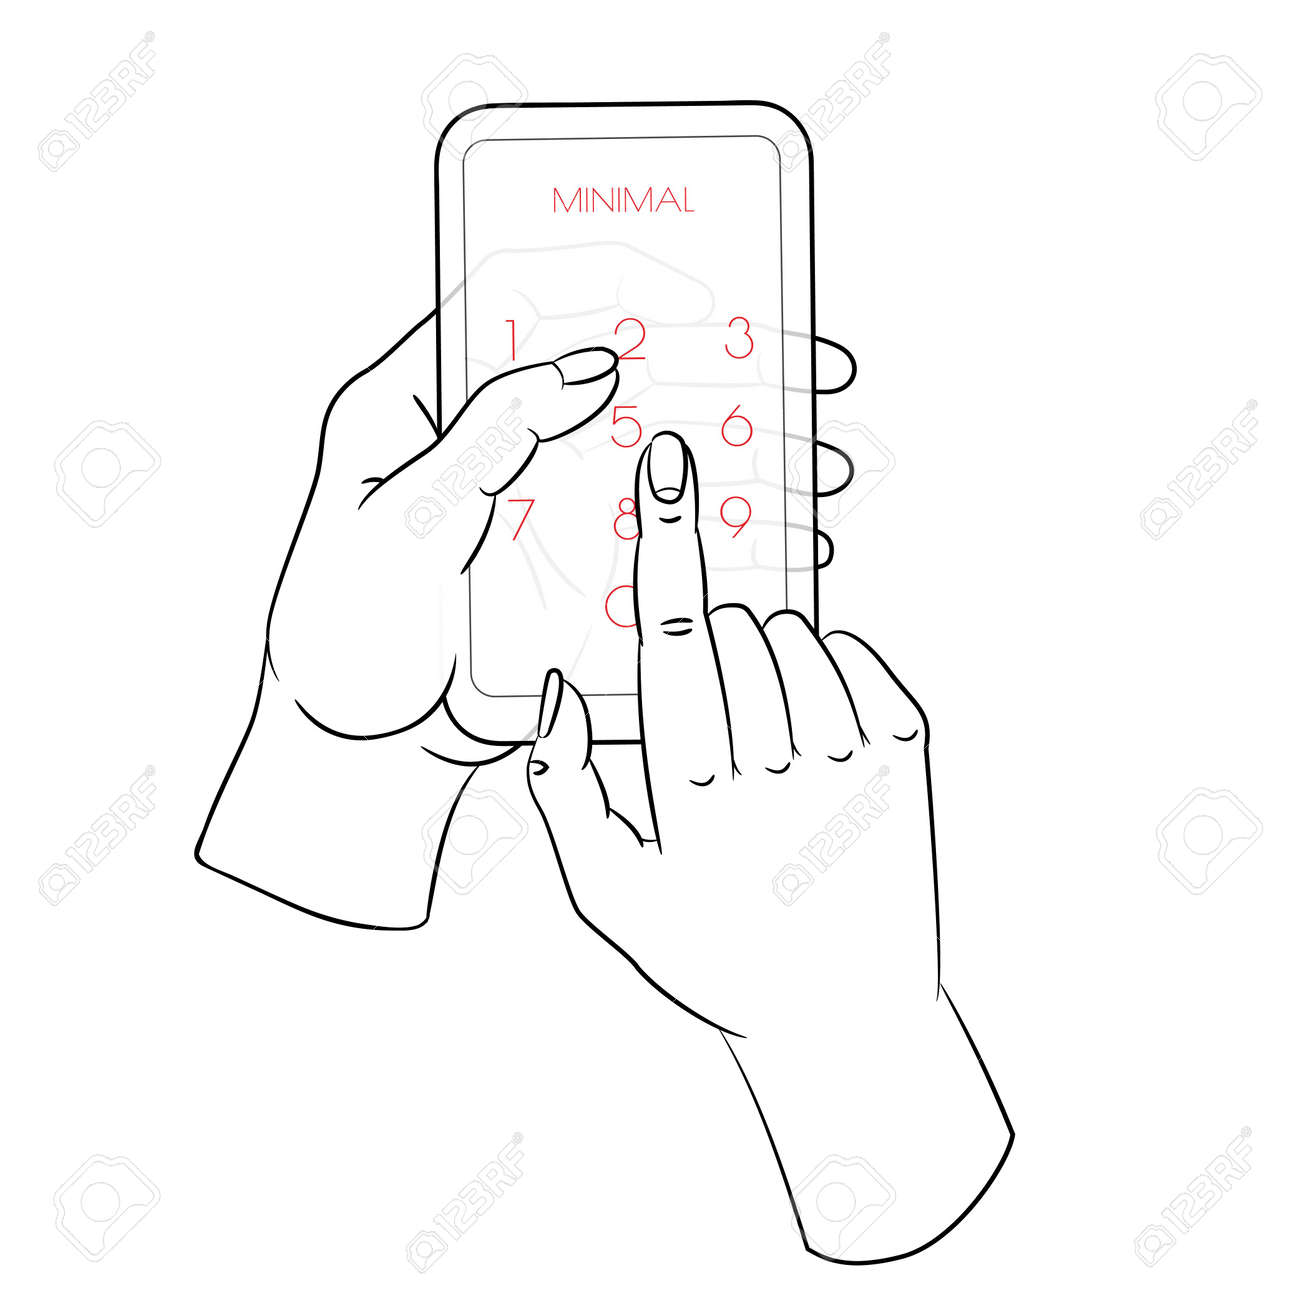 One continuous single drawn line art doodle mobile, phone, technology, gadget, communication, device, telephone, display, electronic, hand, smartphone, palm - 141063718